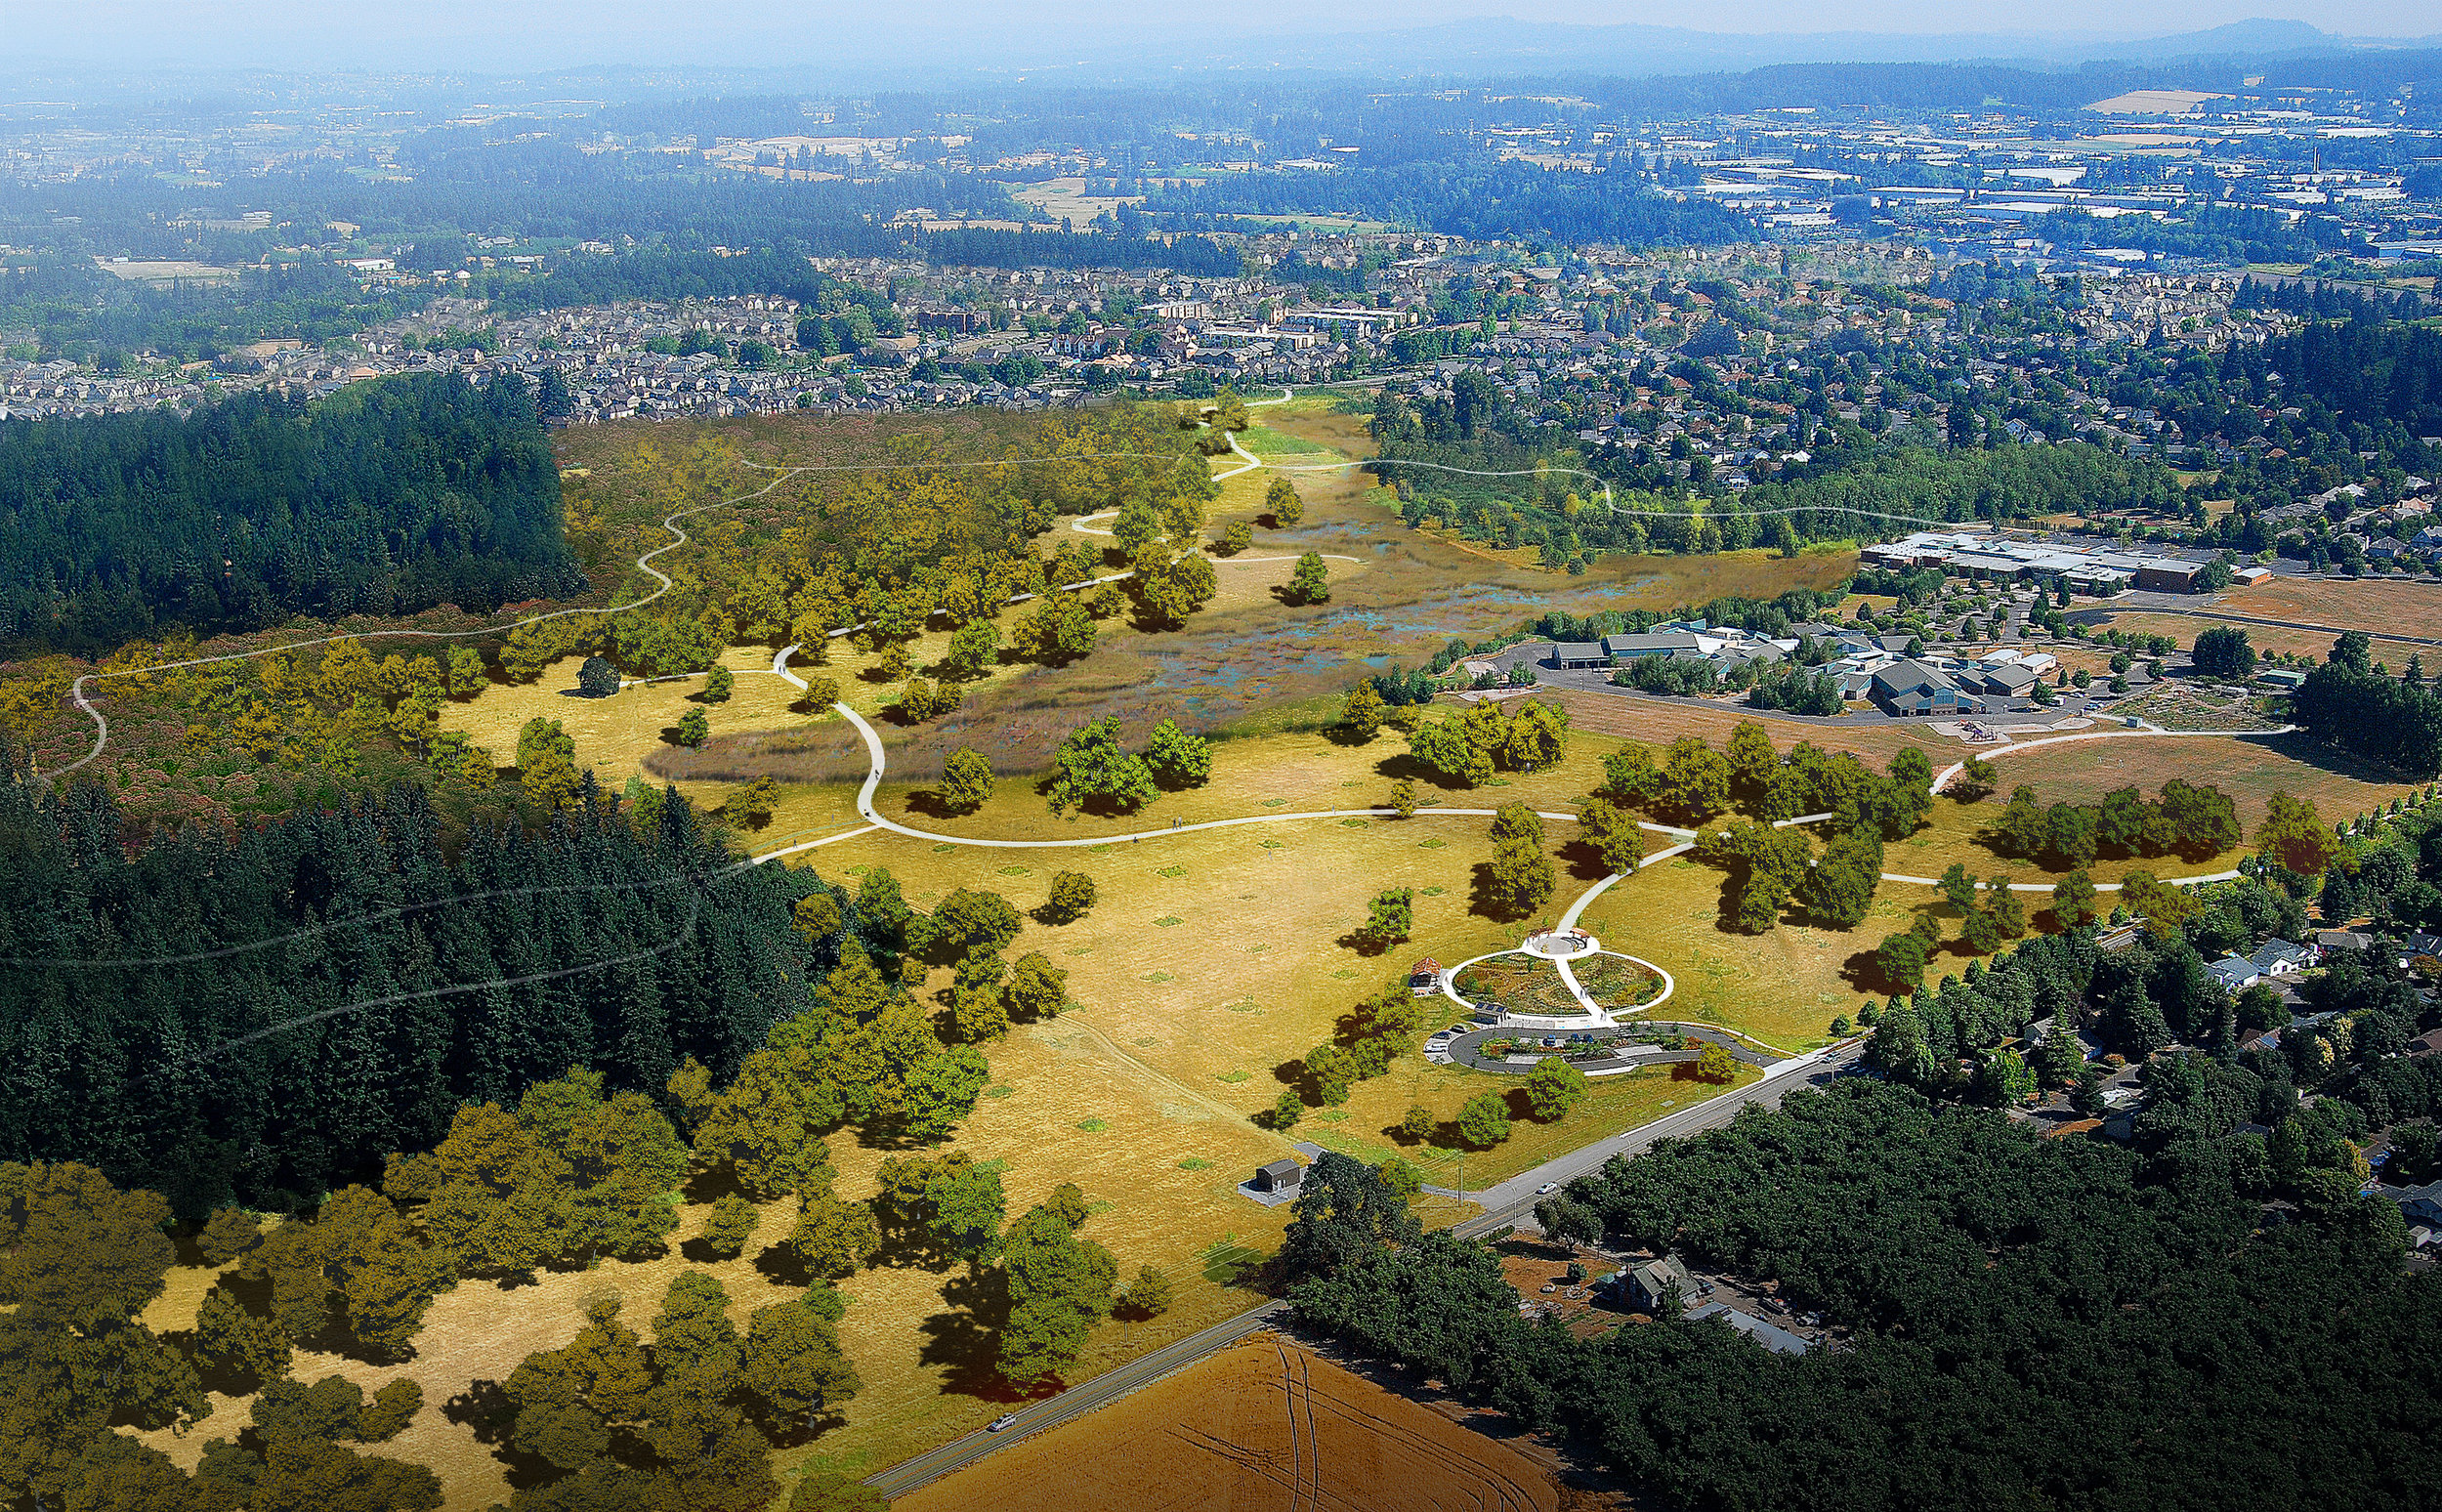 Graham_Oaks_Birdseye_Trail_Rendering.jpg